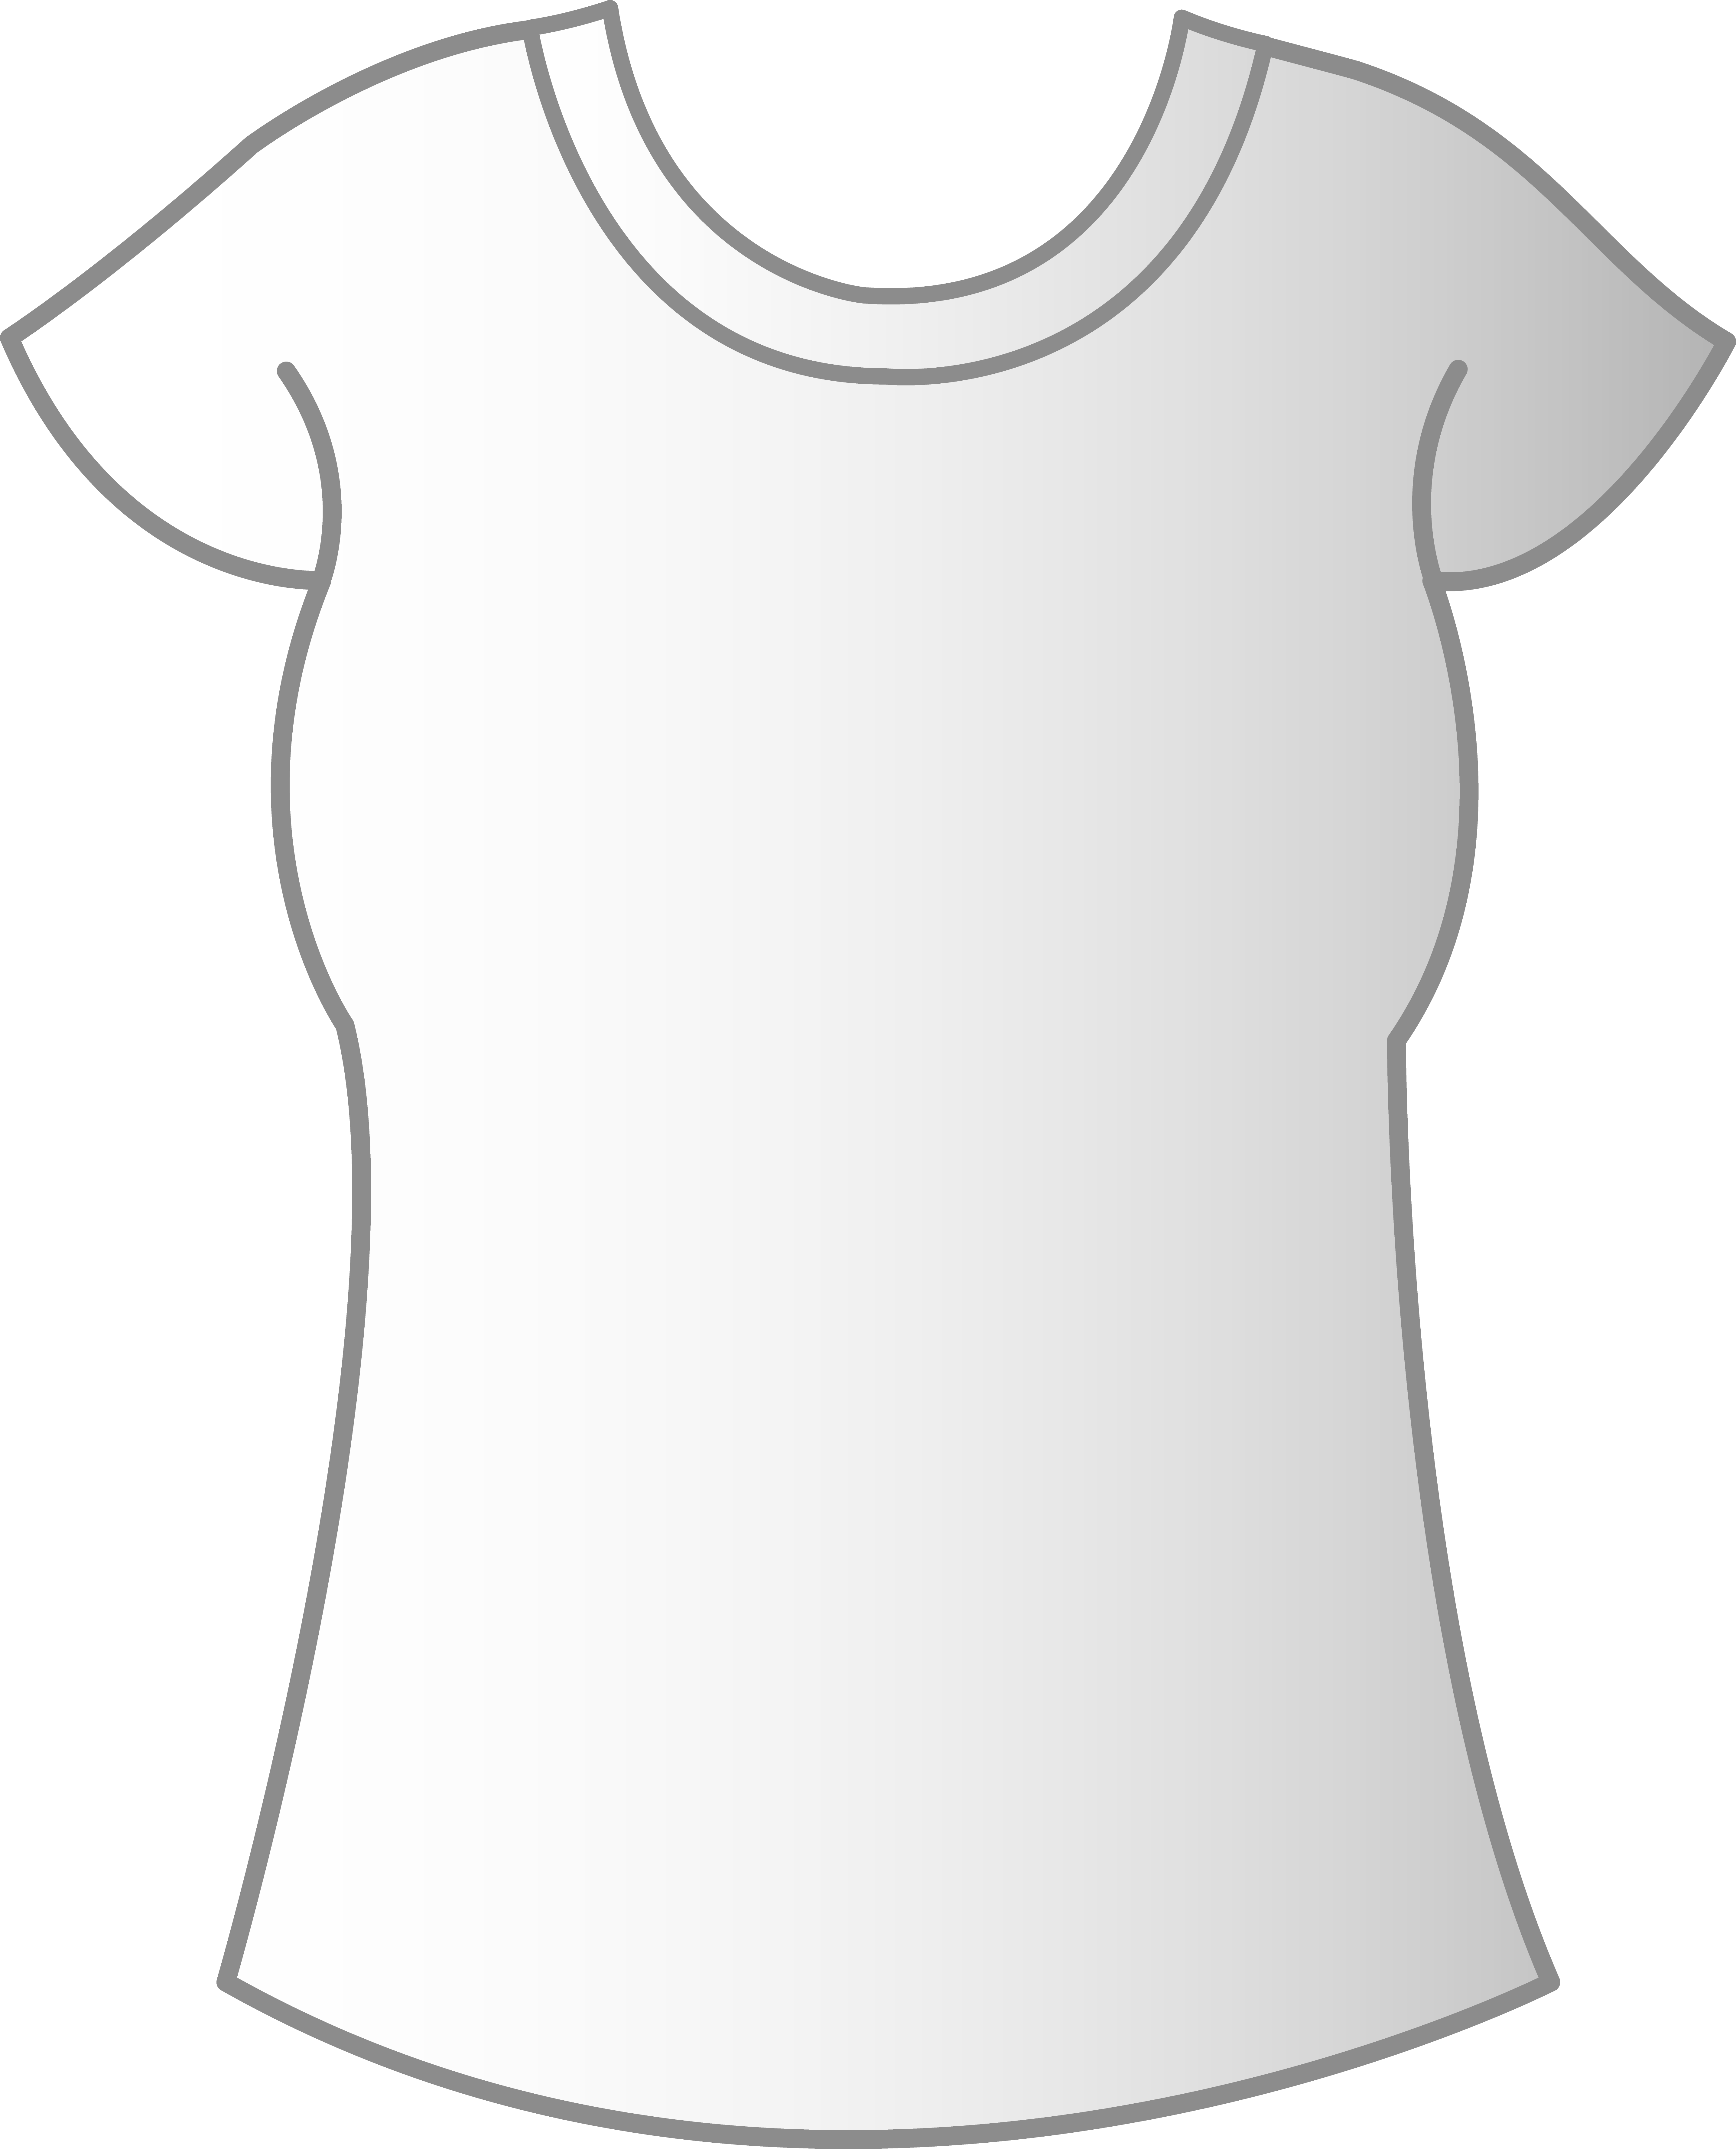 13 white t shirt template images blank white t shirt template plain white t shirt template for Blank white t shirt template